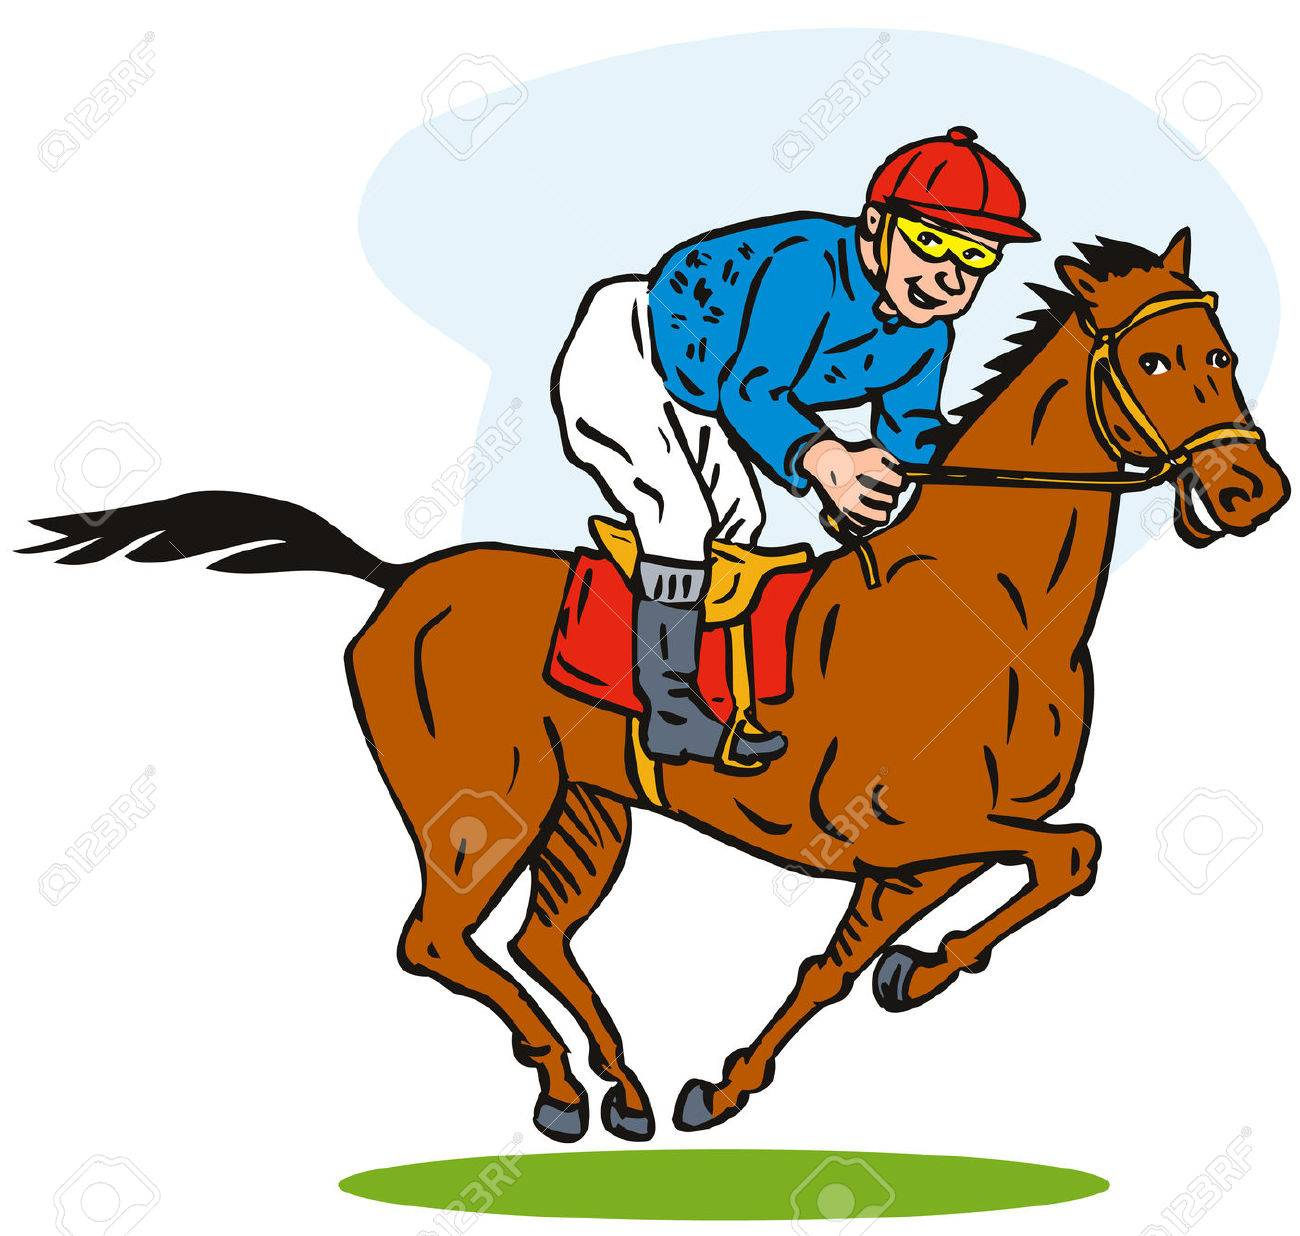 horse racing royalty free cliparts vectors and stock illustration rh 123rf com horse racing clipart in ai free horse race clipart